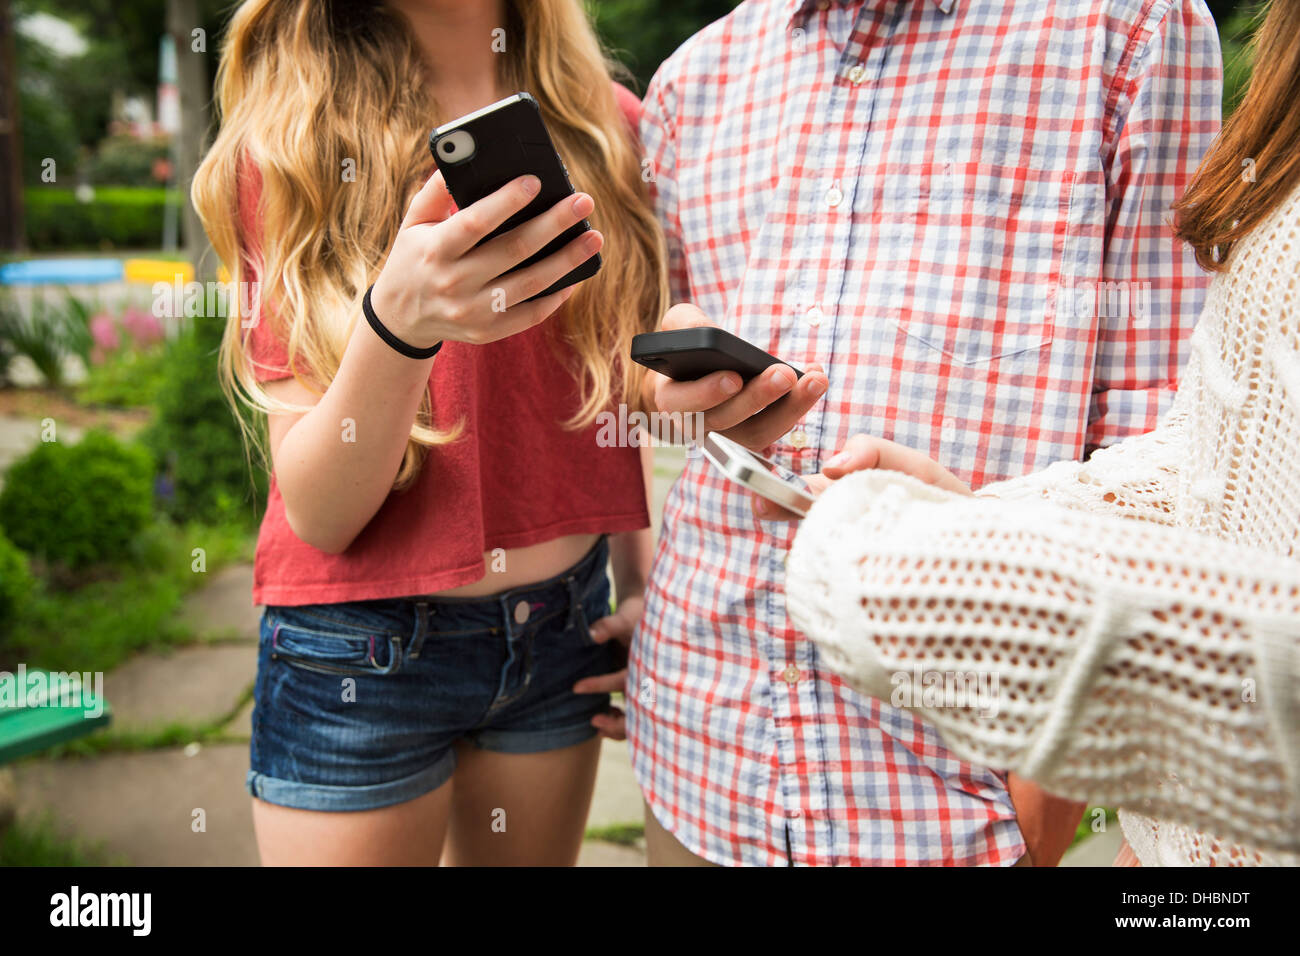 Two friends, a boy and girl looking at their phones. - Stock Image